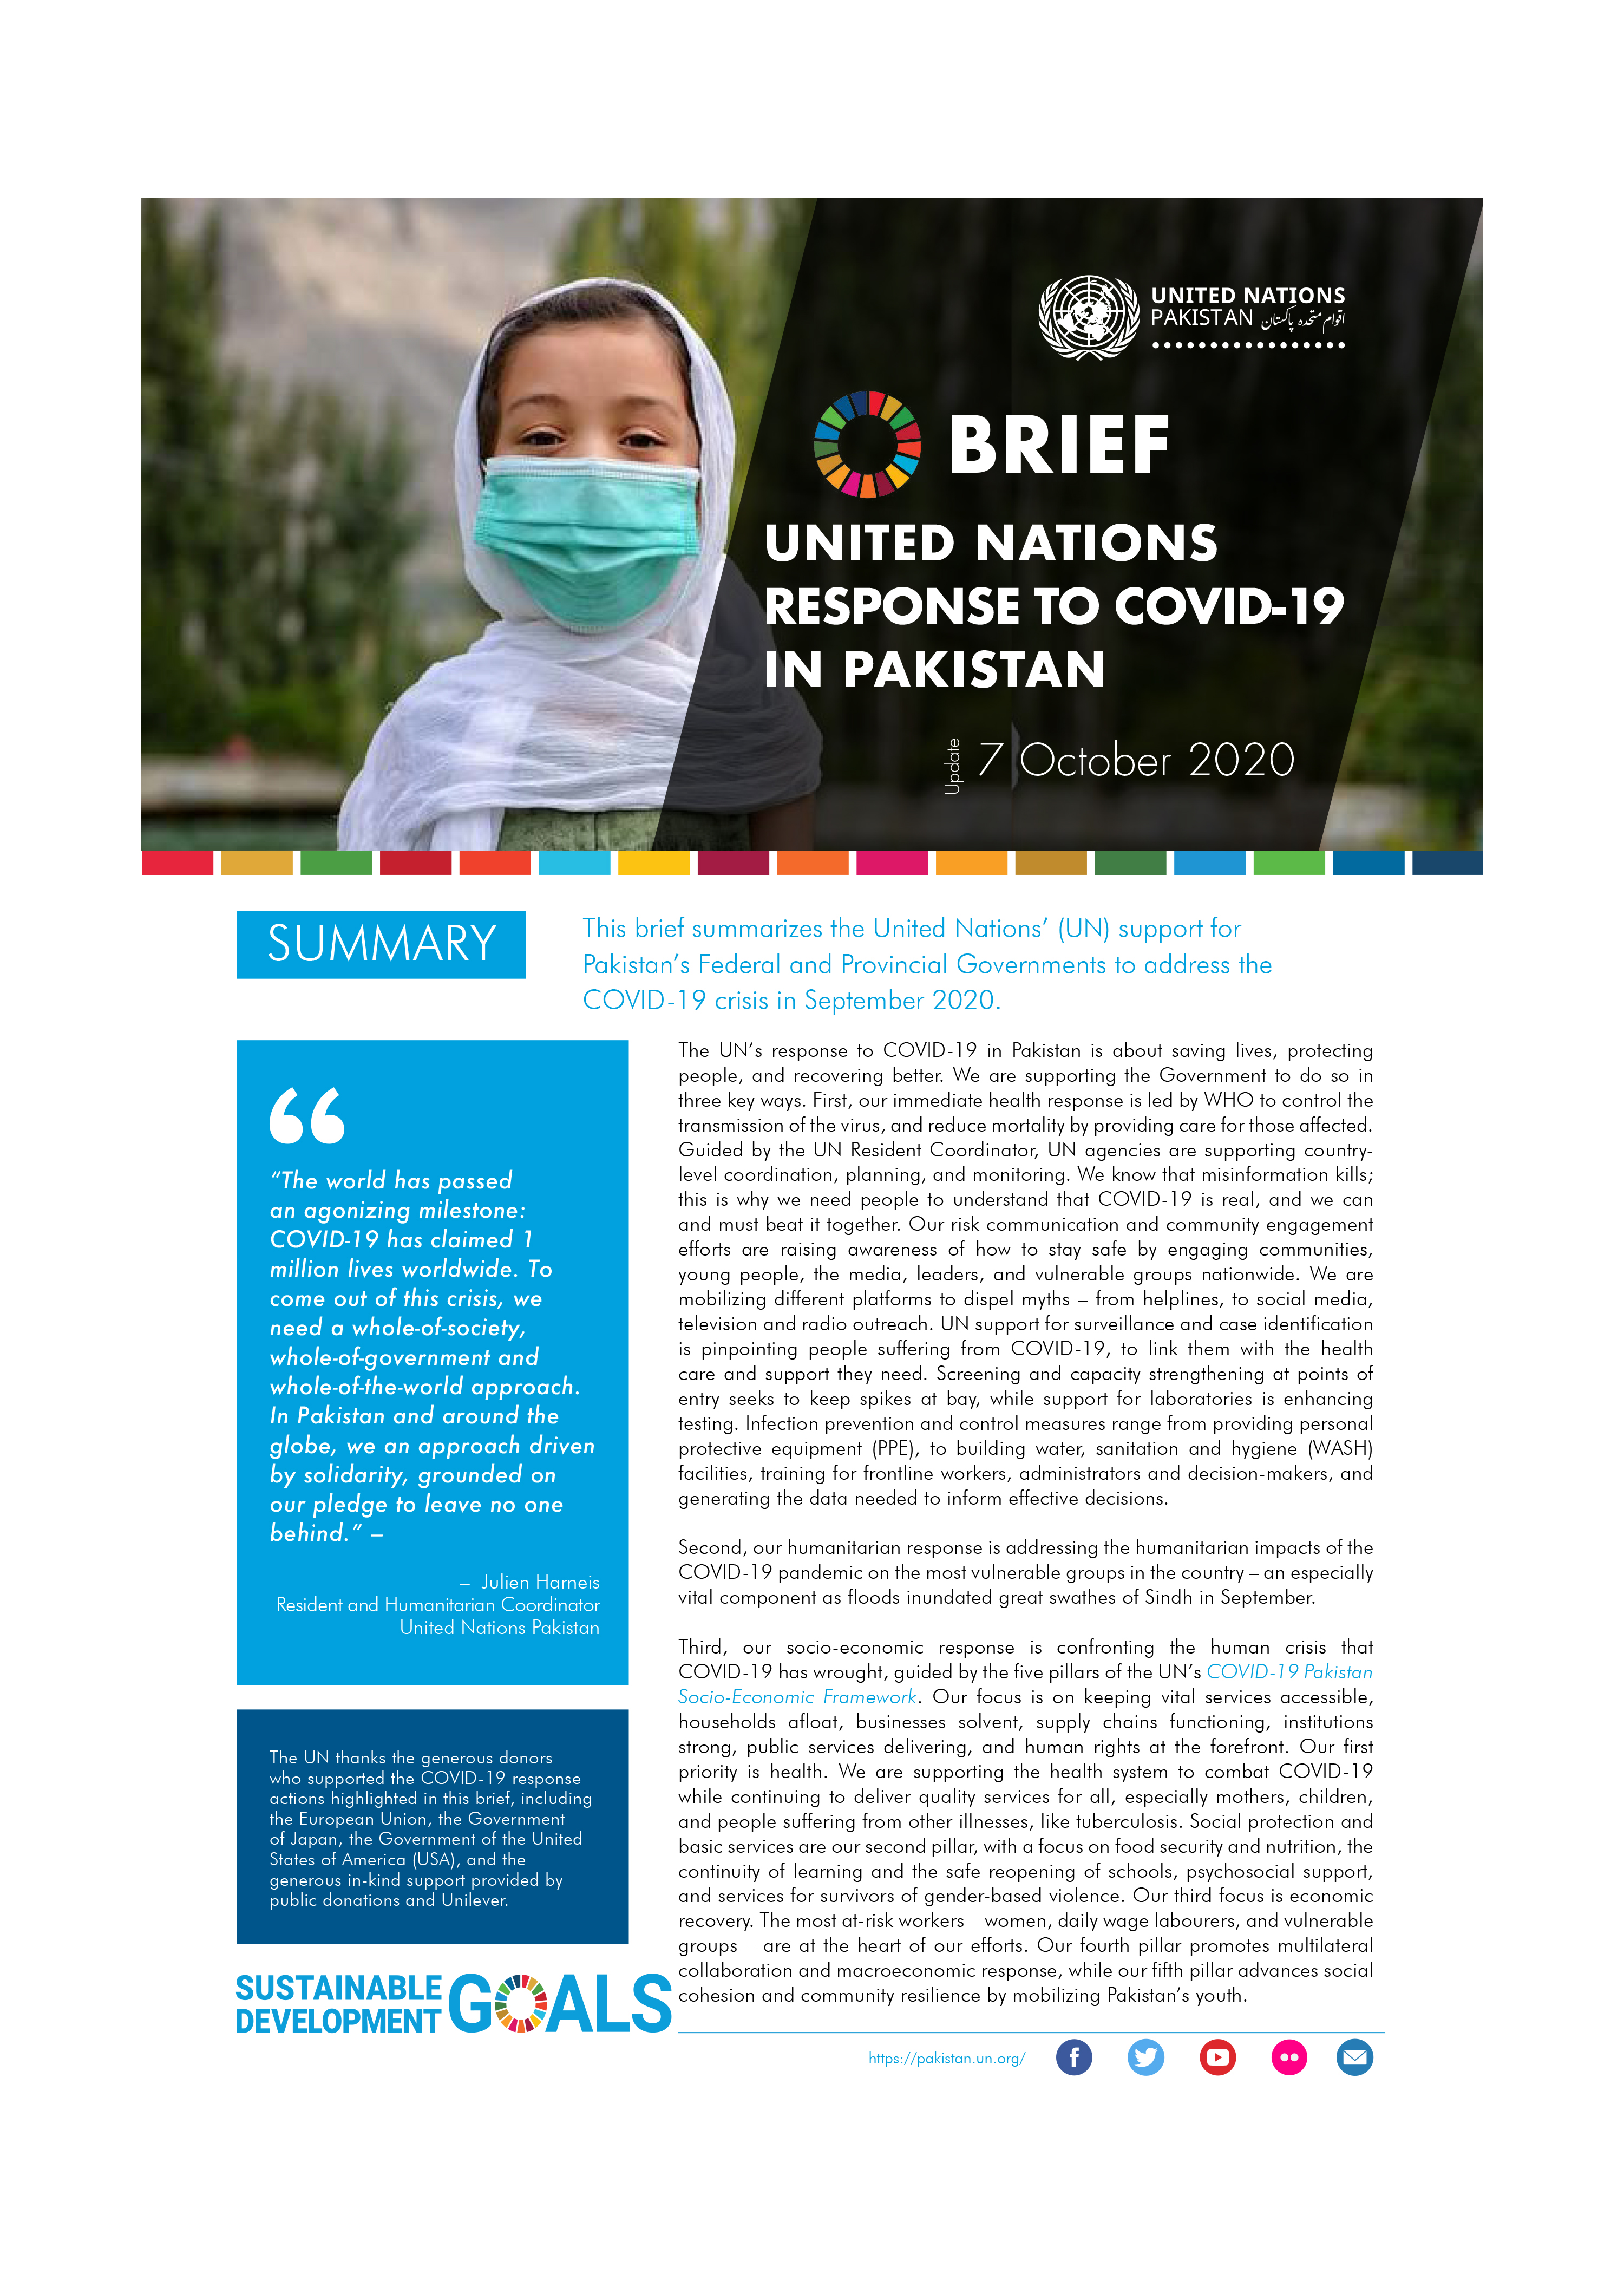 Brief: United Nations response to Covid-19 in Pakistan, October 2020